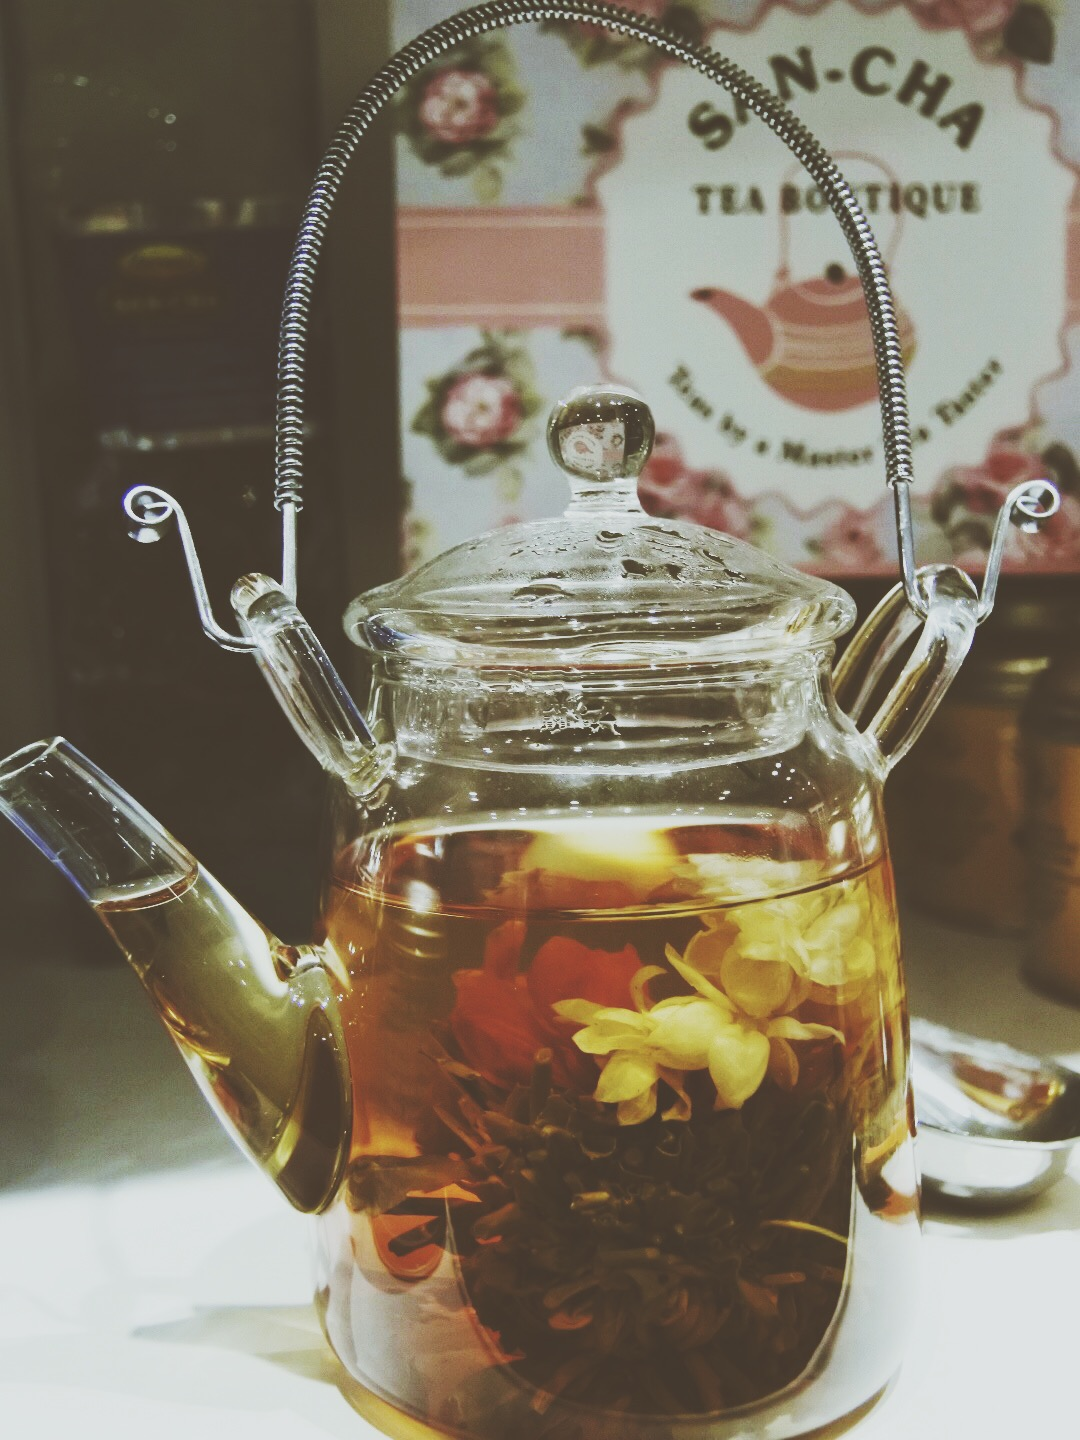 Jasmine green tea in its kettle